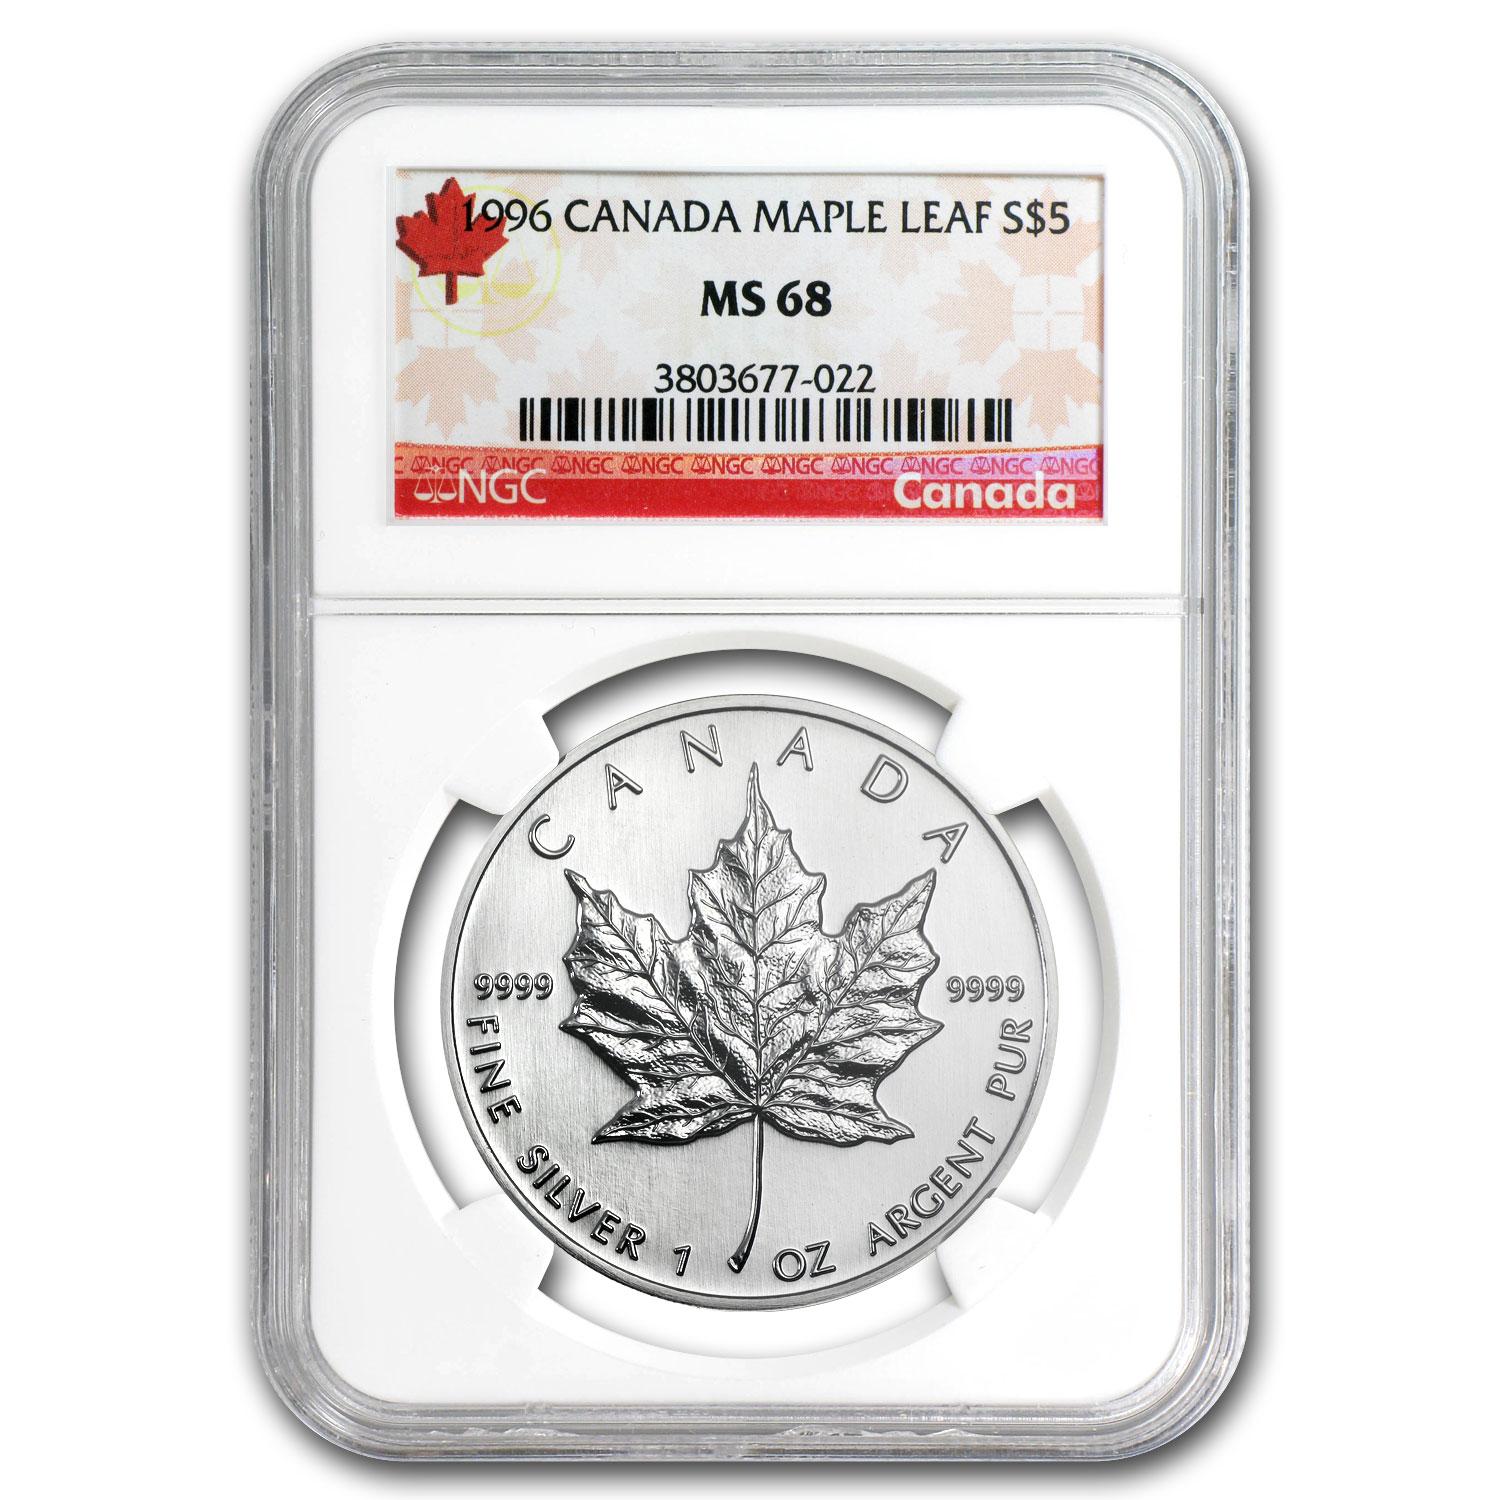 1996 Canada 1 oz Silver Maple Leaf MS-68 NGC